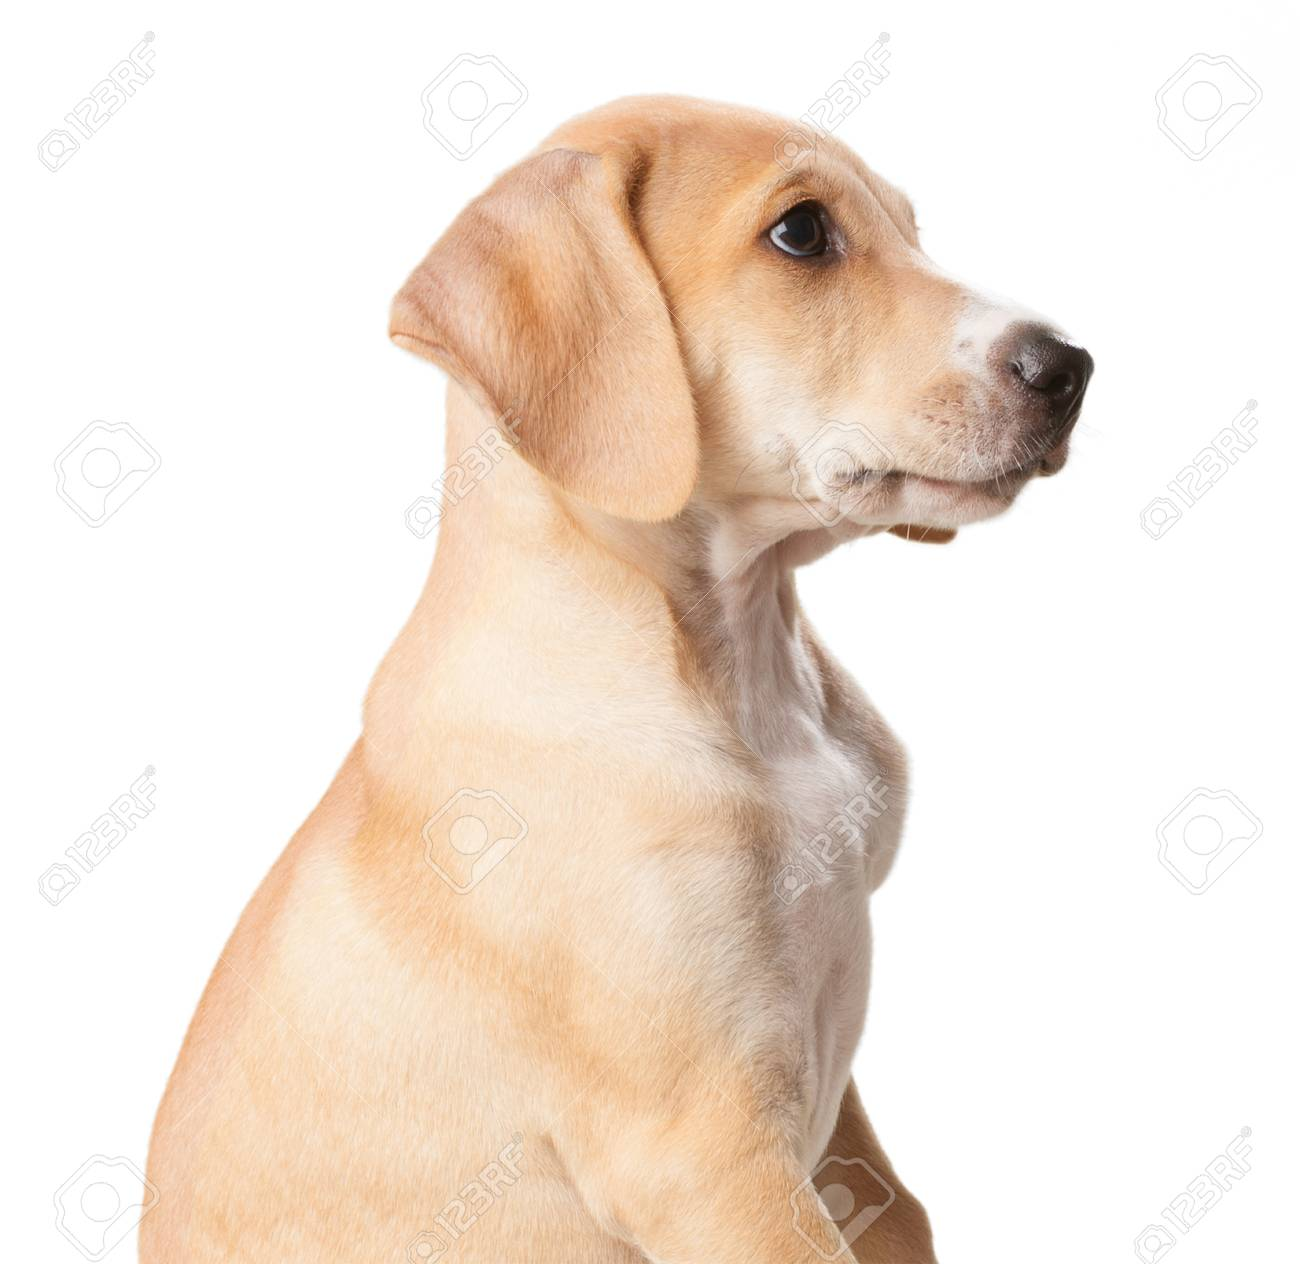 be4e6729f35 Short haired blond dog with mouth closed close up